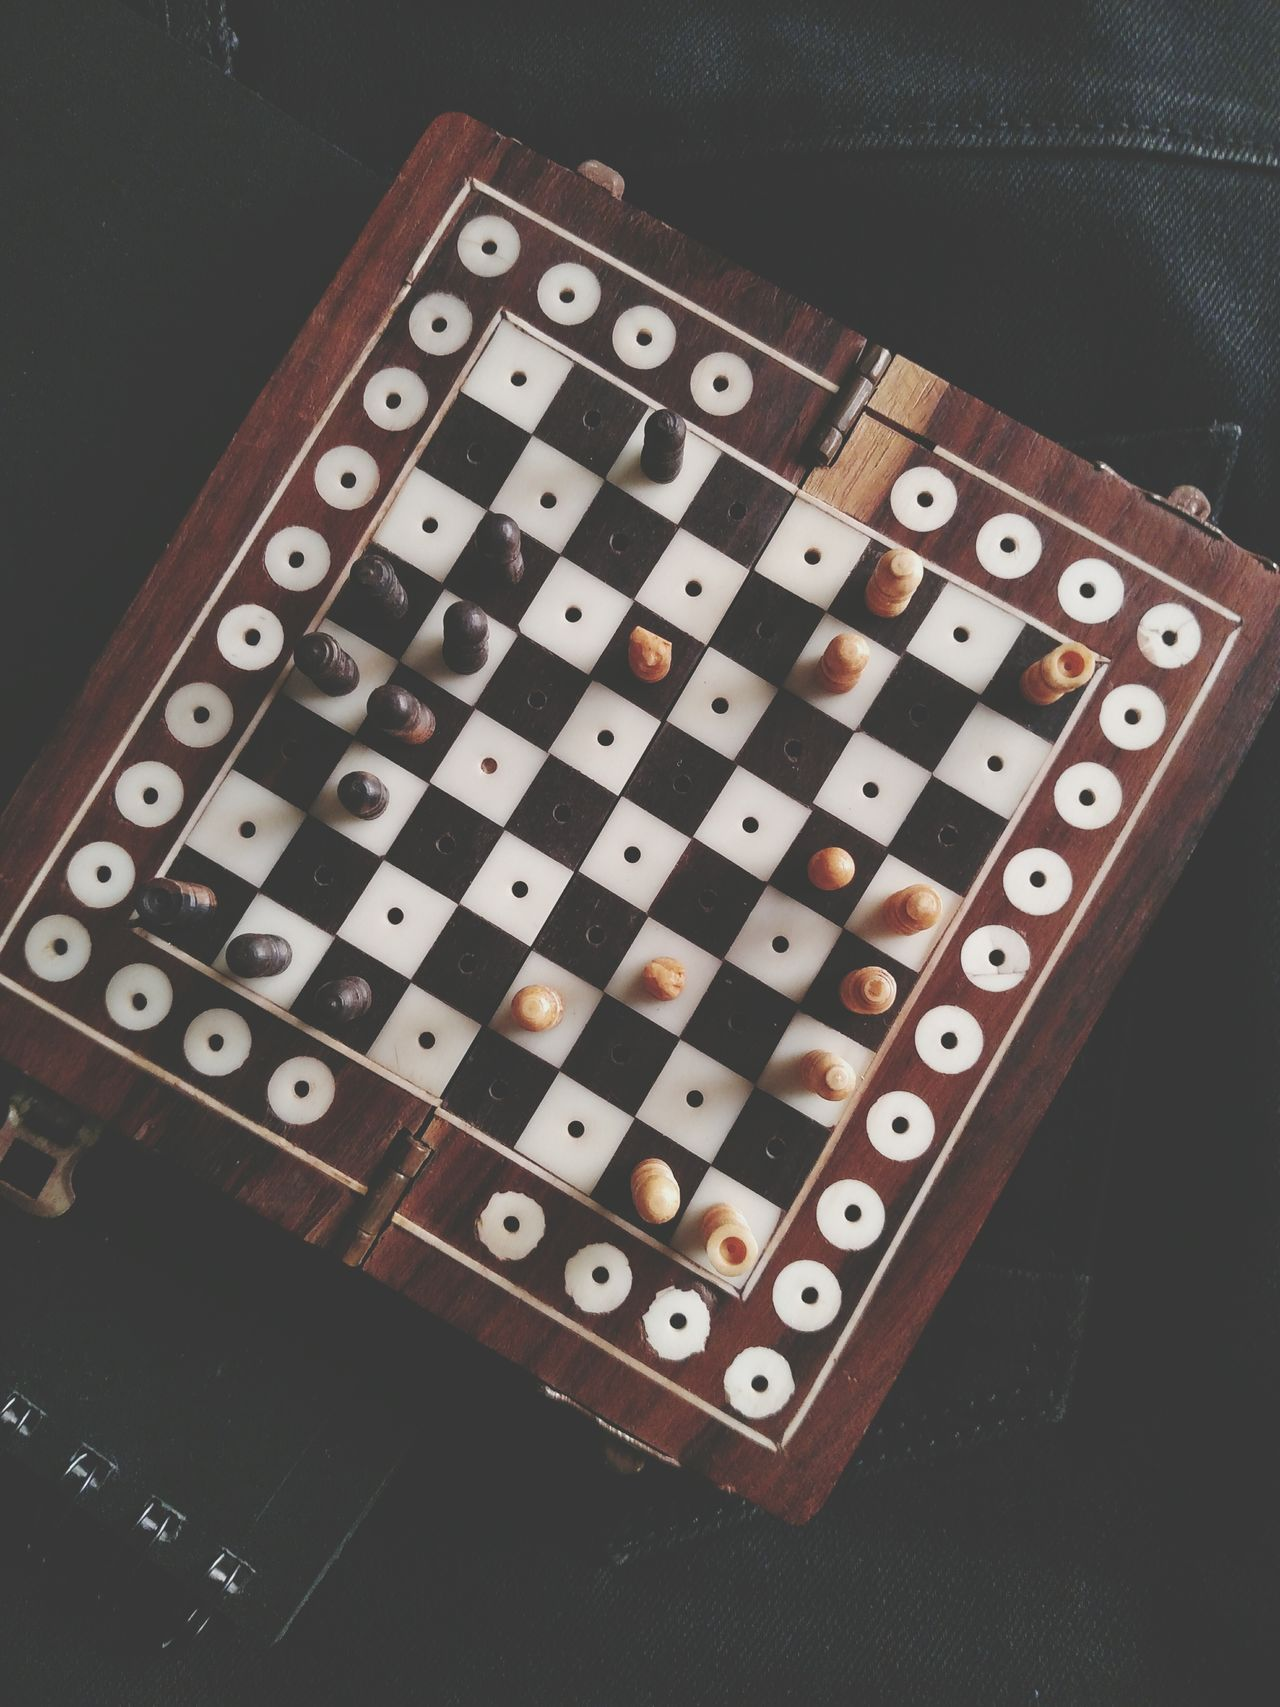 Wooden Chess Chess Board Chesspieces Old Wooden Chess No People Small Old Indoors  Day Classic Vintage Vintage Stuff Rare Items Cool Stuff Cool Old Is Gold Close-up Old Style India Indian Mobile Photography Lieblingsteil Be. Ready.